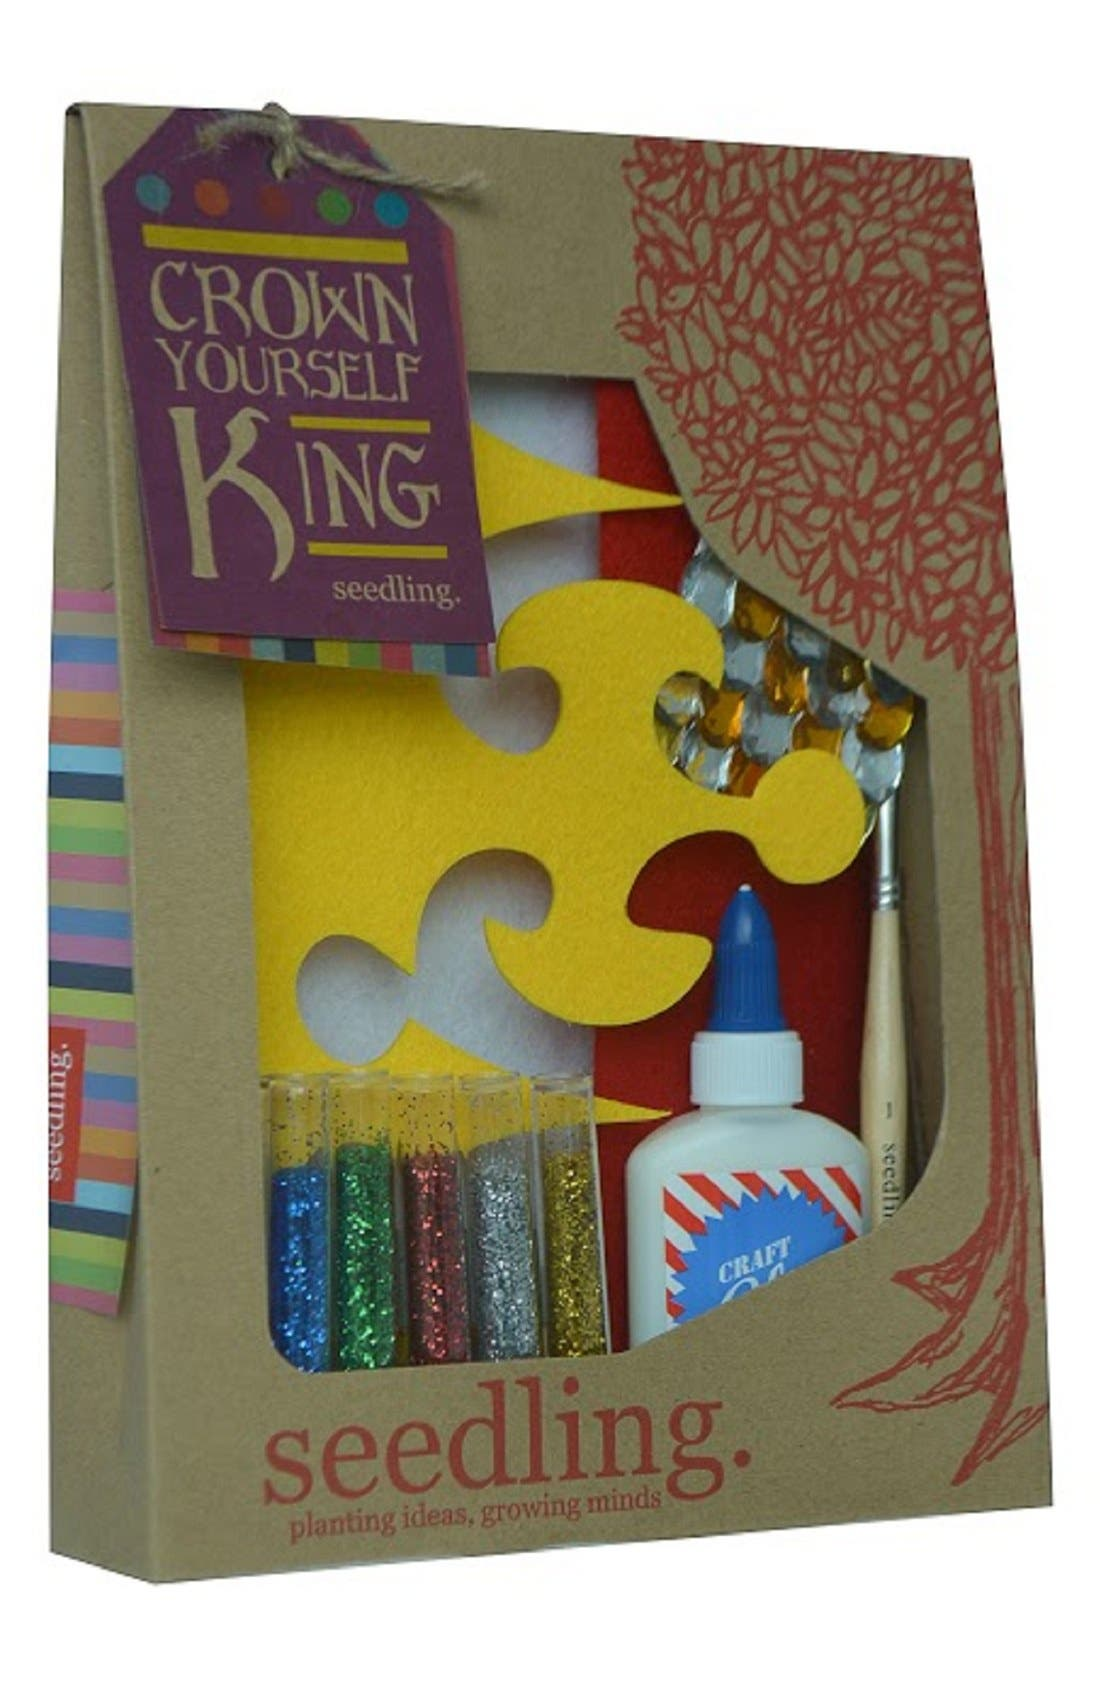 seedling 'Crown Yourself King' DIY Craft Set